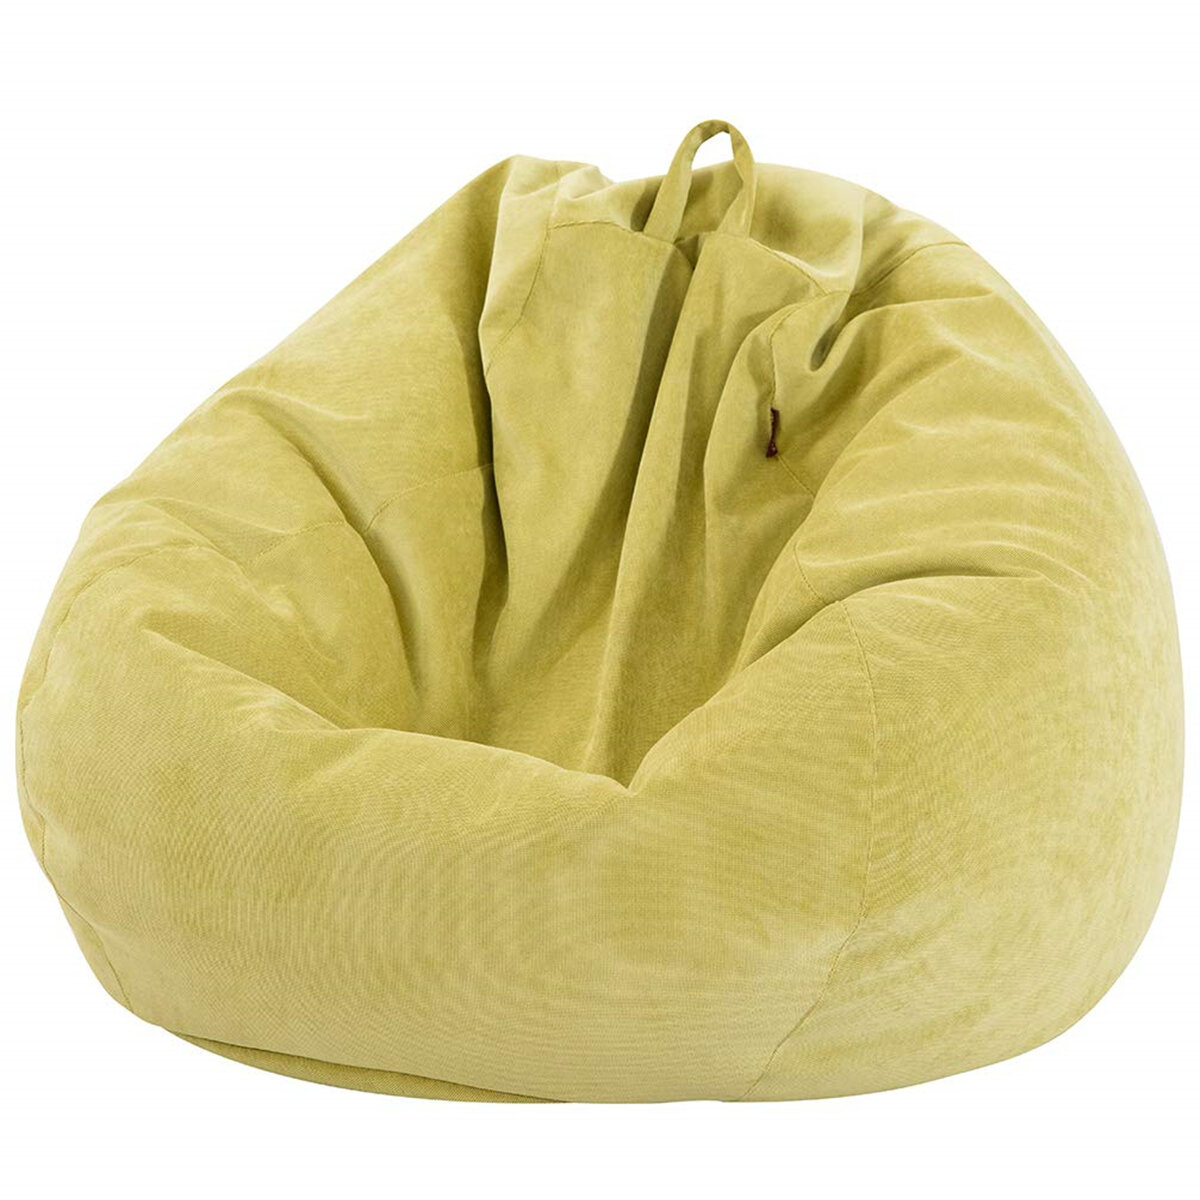 100*120cm Lazy Sofa Cover Chairs Cover with Inner Liner Warm Corduroy Lounger Seat Bean Bag Pouf Puff Couch Tatami Living Room